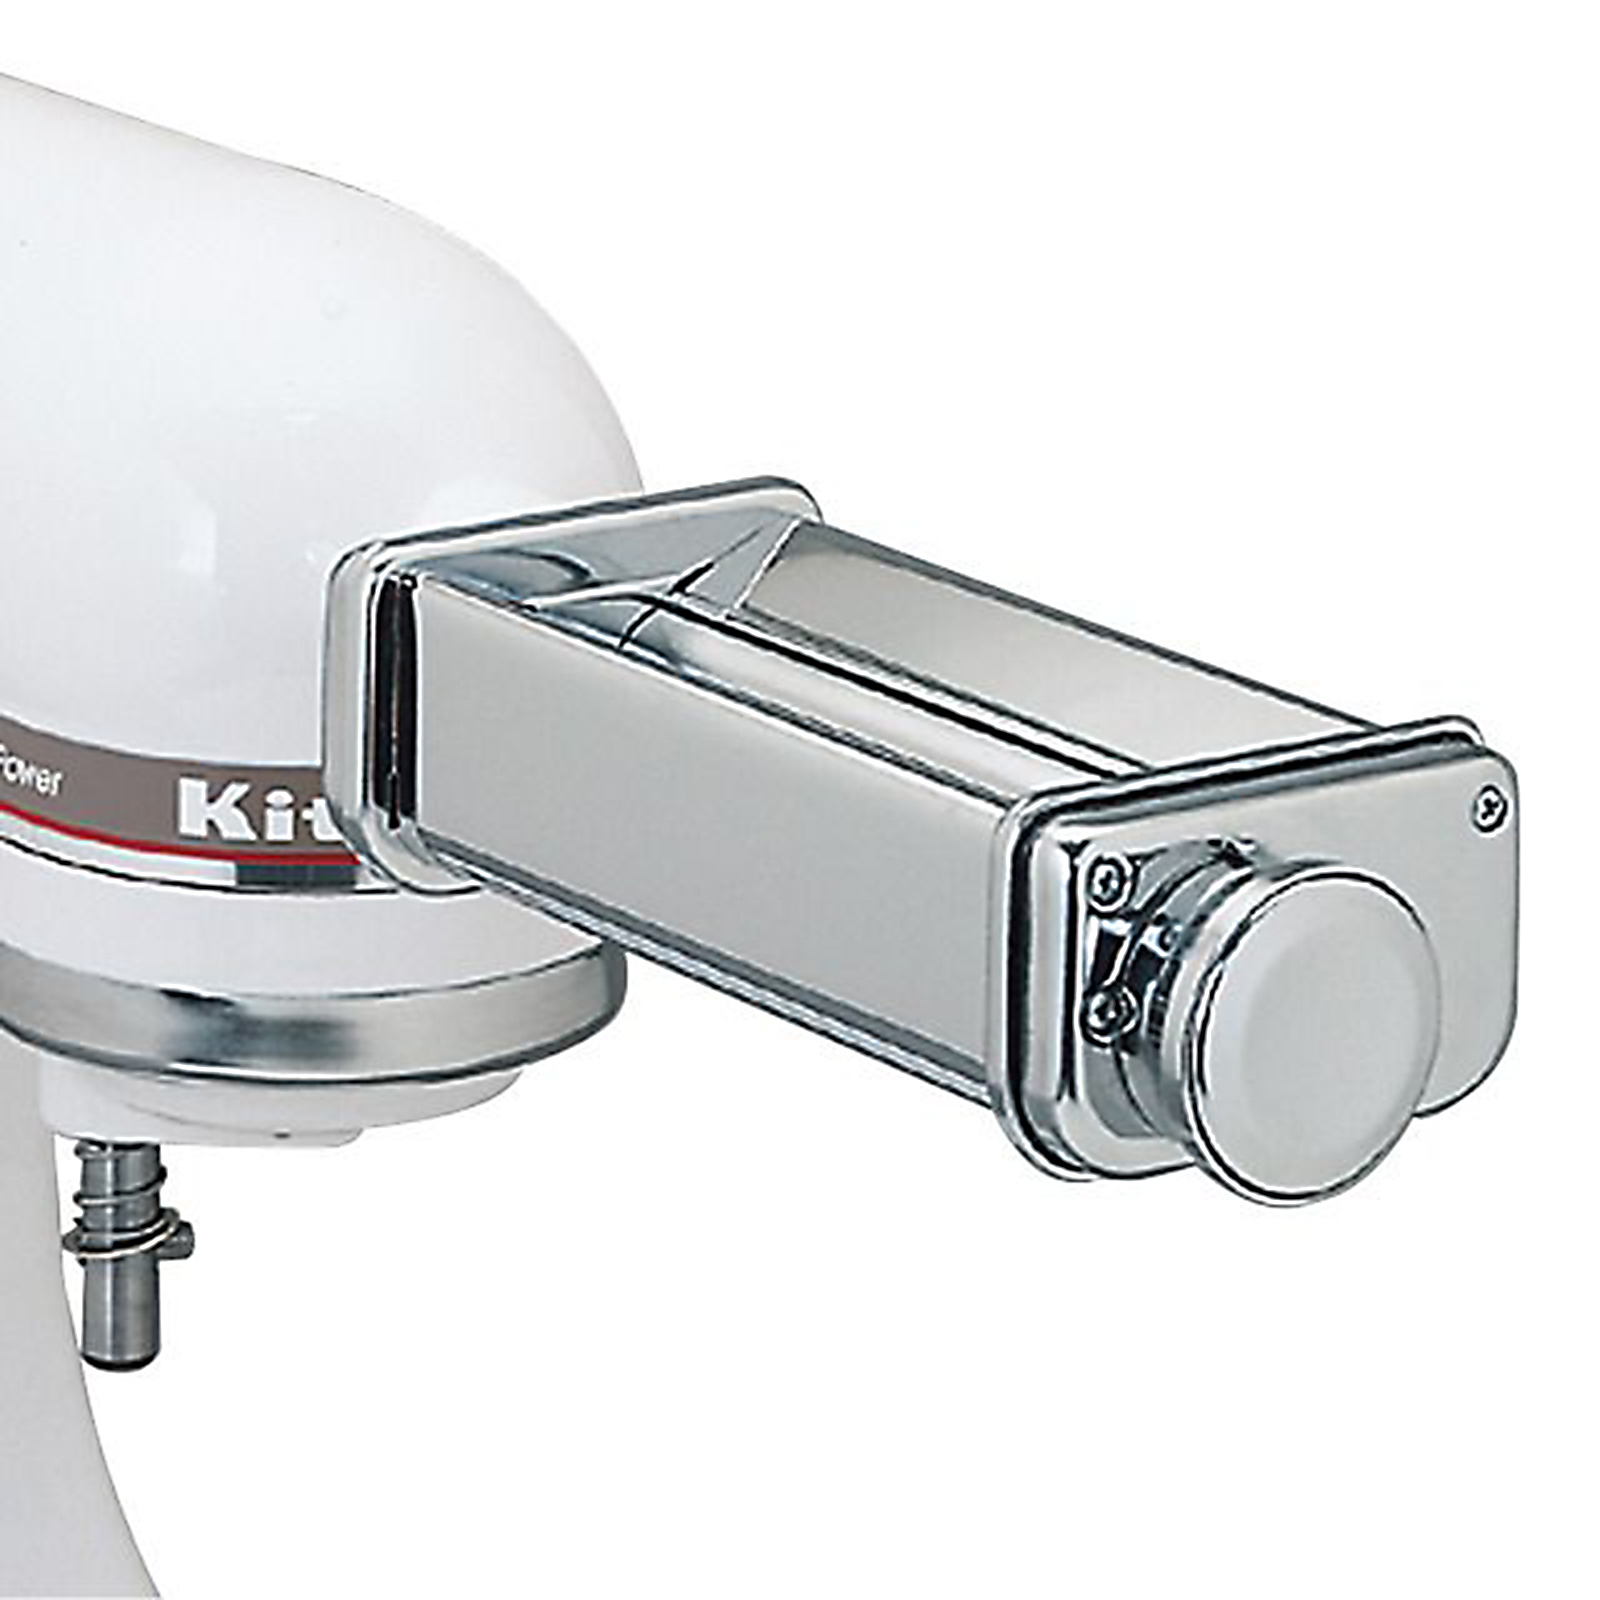 kitchen aid attachment sinks austin tx special promo offer hot deals kitchenaid kpra pasta